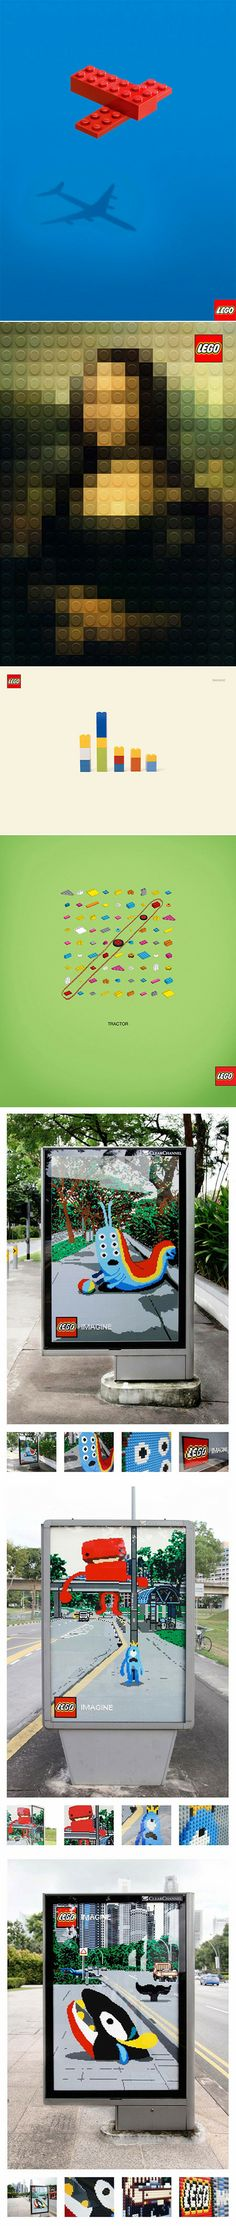 For many of us, LEGO provided the building blocks for our fervent childhood imaginations. I have fond memories from my own childhood of playing with LEGO and loving the freedom to build whatever I wanted. Many of you may even continue to use LEGO to this day! Below are a series of ads that beautifully communicate this sentiment of freedom and imagination. Enjoy!